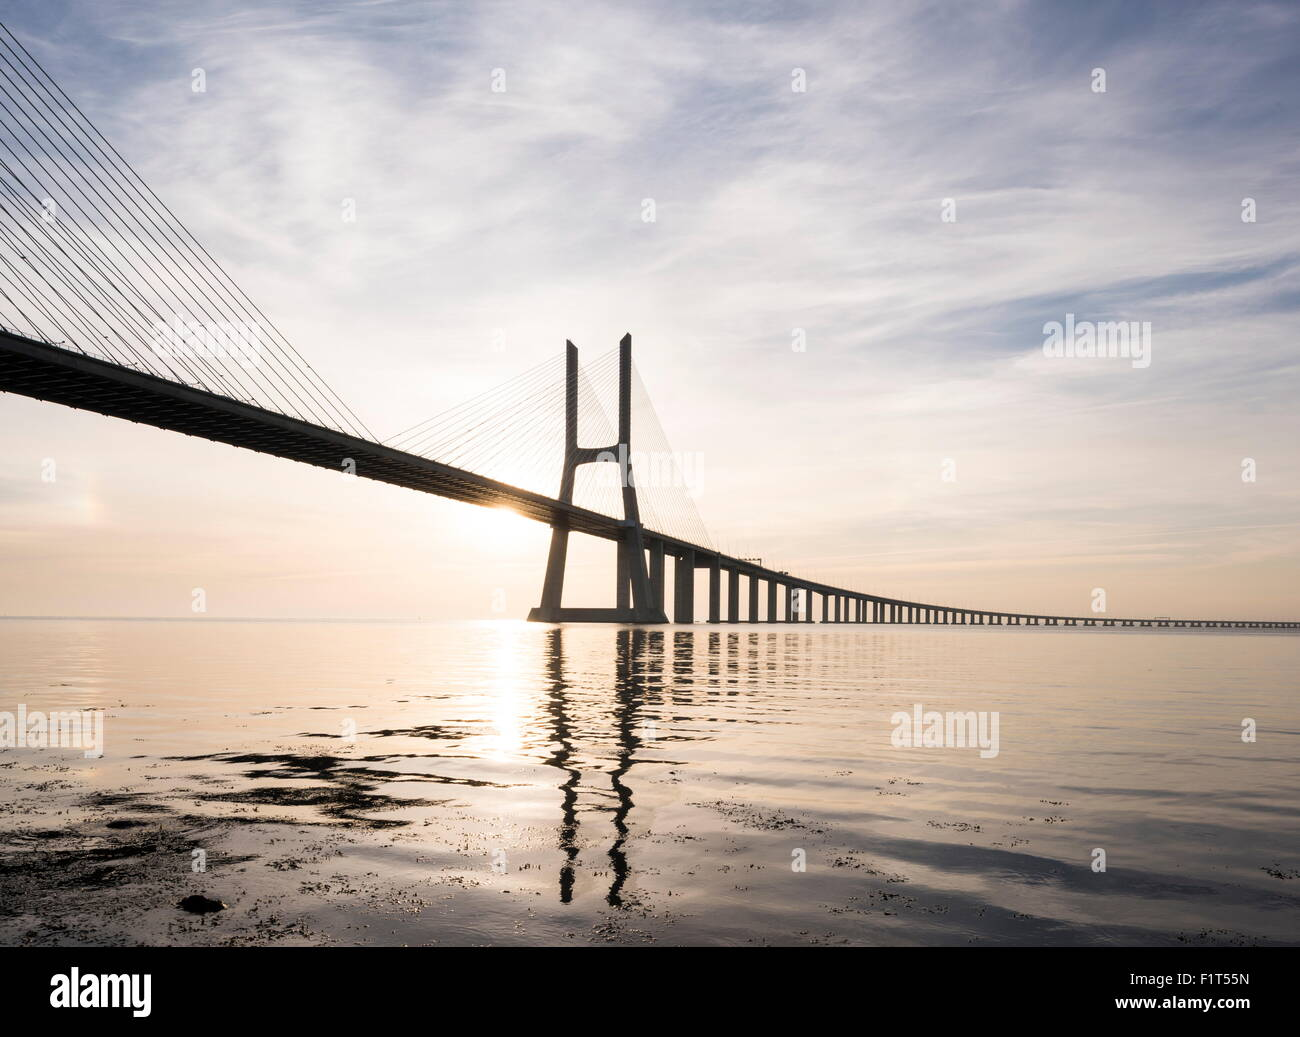 Vasco da Gama Bridge over Rio Tejo (Tagus River) at dawn, Lisbon, Portugal, Europe - Stock Image